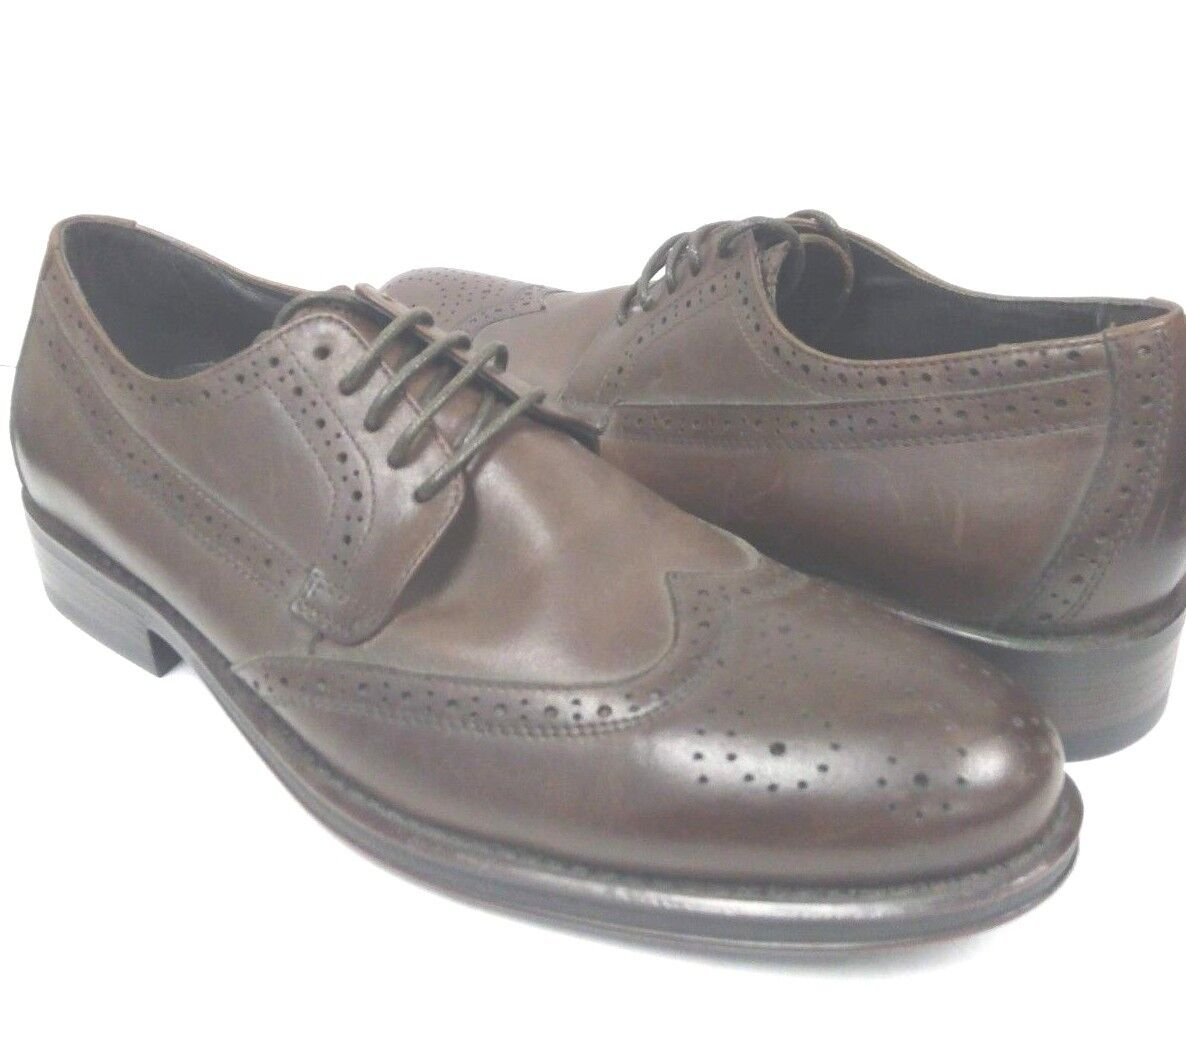 225 Donald Pliner Brown Genuine Leather Wingtip Oxford Dress shoes Size 8.5